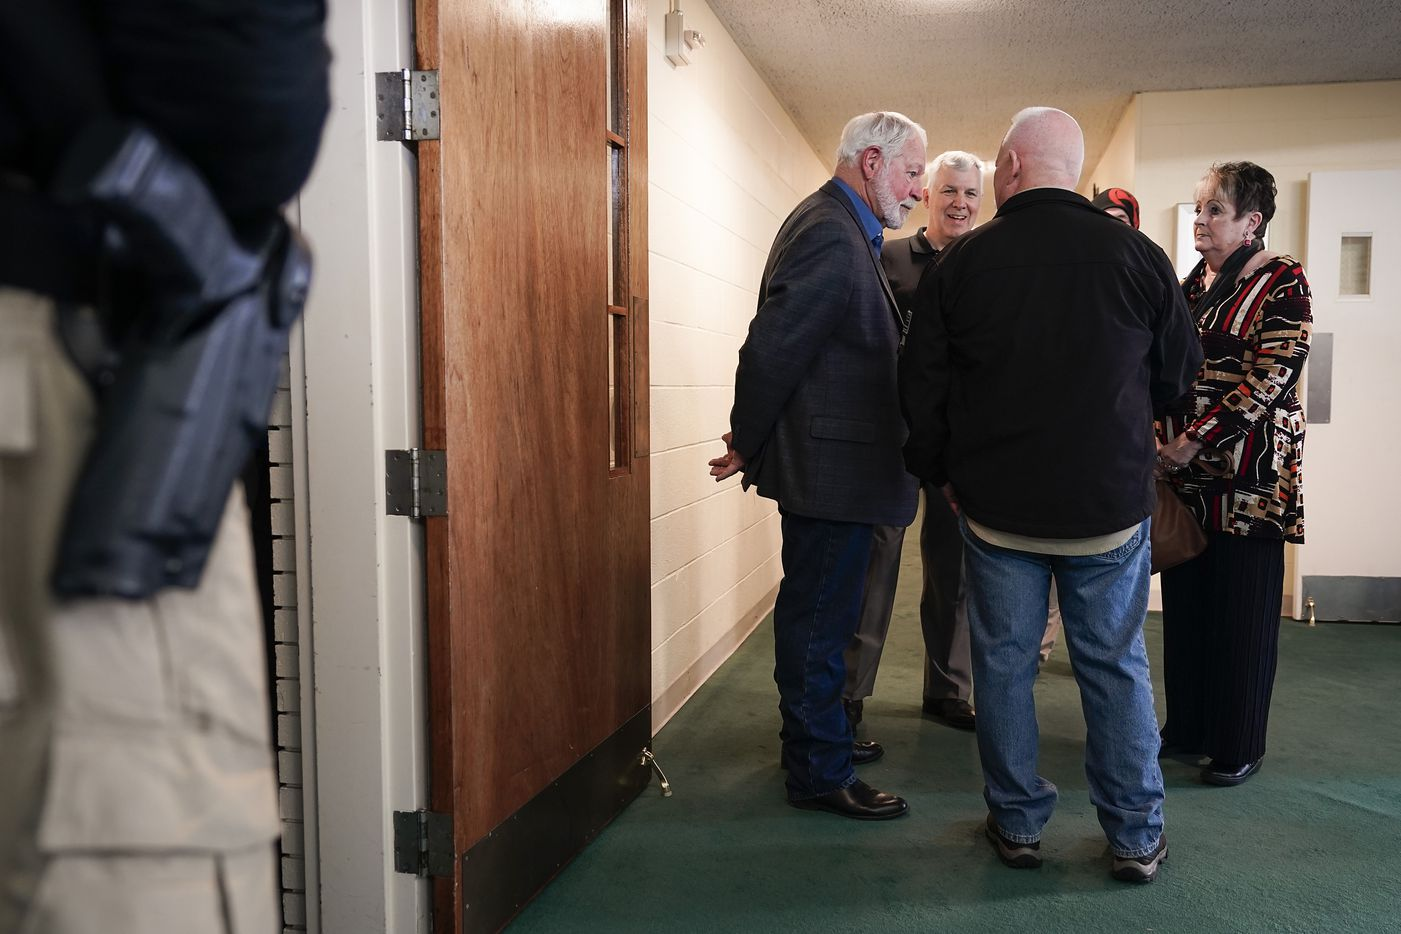 A member of the event security team stands at the doorway to the sanctuary at North Pointe Baptist Church as, from left, Jack Wilson, Mike Swihart, Greg Stevens and Cheryl Linam chat in the lobby during a  church safety seminar on Sunday, Jan. 26, 2020, in Hurst, Texas. Wilson, the head of the West Freeway Church of Christ volunteer security team who stopped a gunman at the church in White Settlement. Swihart, an off duty police officer at the time, stopped a deadly domestic dispute in the parking lot of his church in Fort Collins, Colo. in 1992. Stevens, then a Garland police officer, took down two terrorists at Curtis Culwell Center in 2015. Linam lost her 7-year old daughter in a shooting at First Baptist Church in Daingerfield, Texas in 1980.